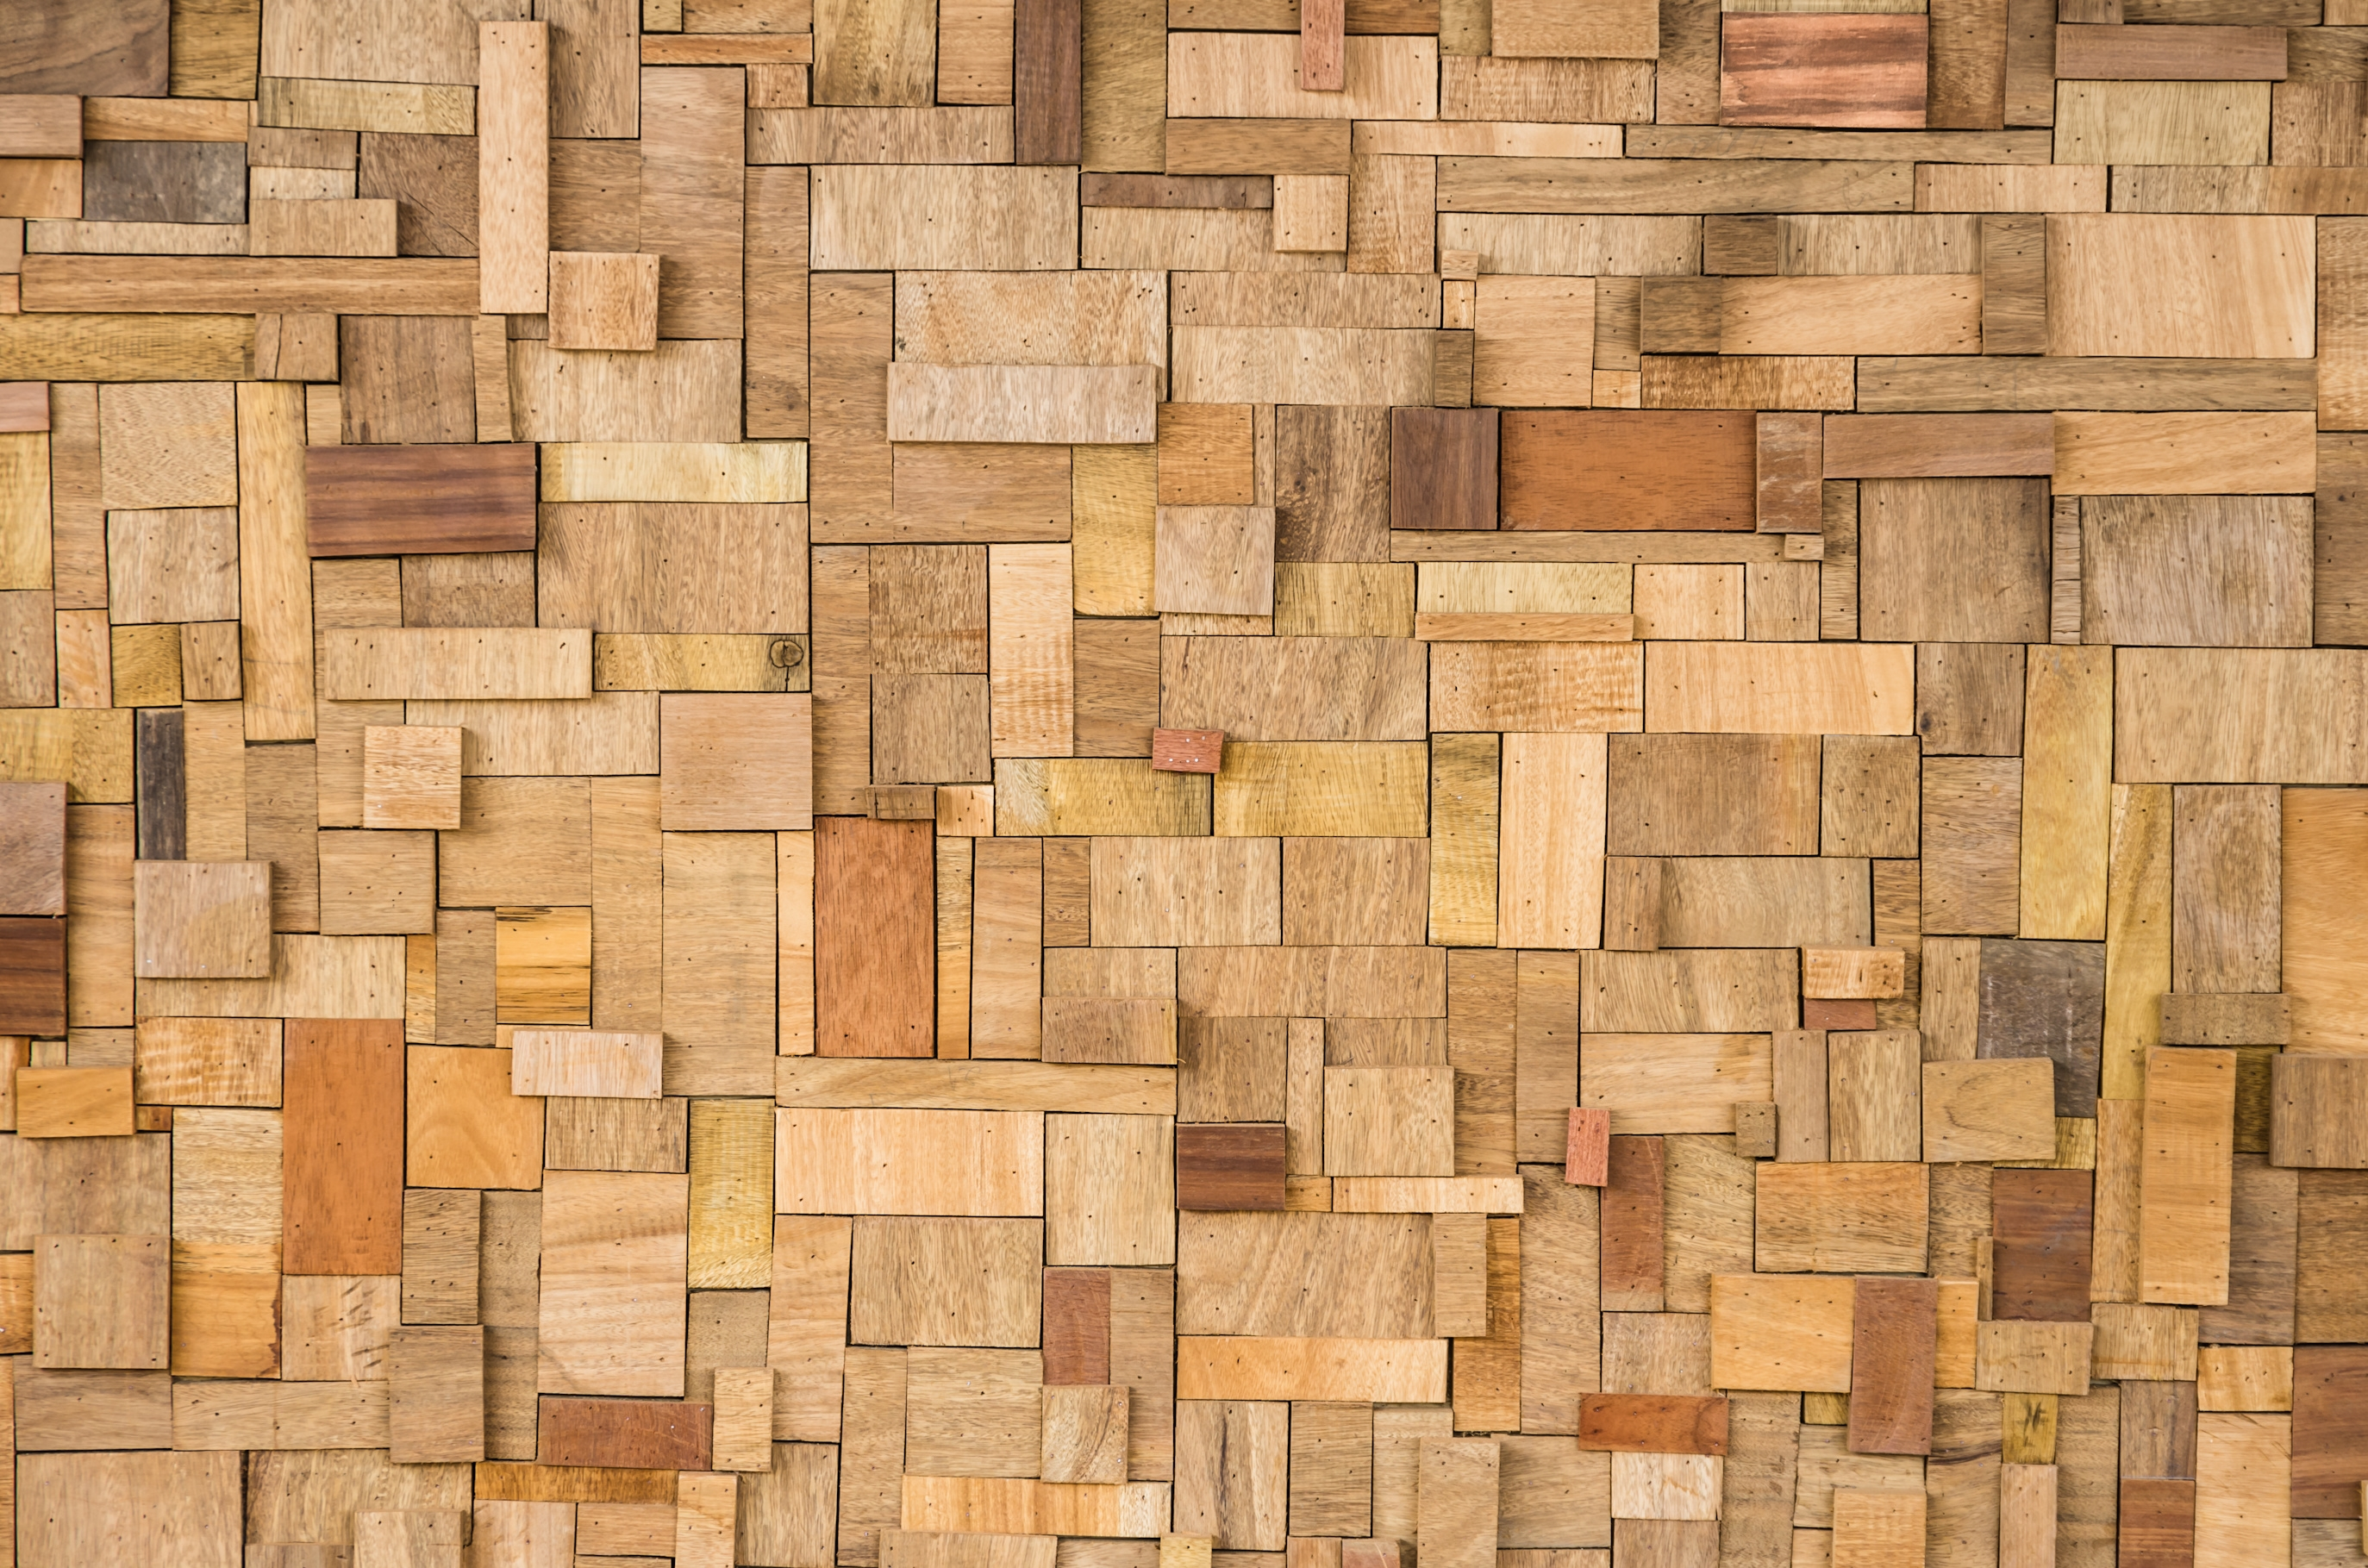 Wood texture ecological background custom wallpaper for Home wallpaper wood